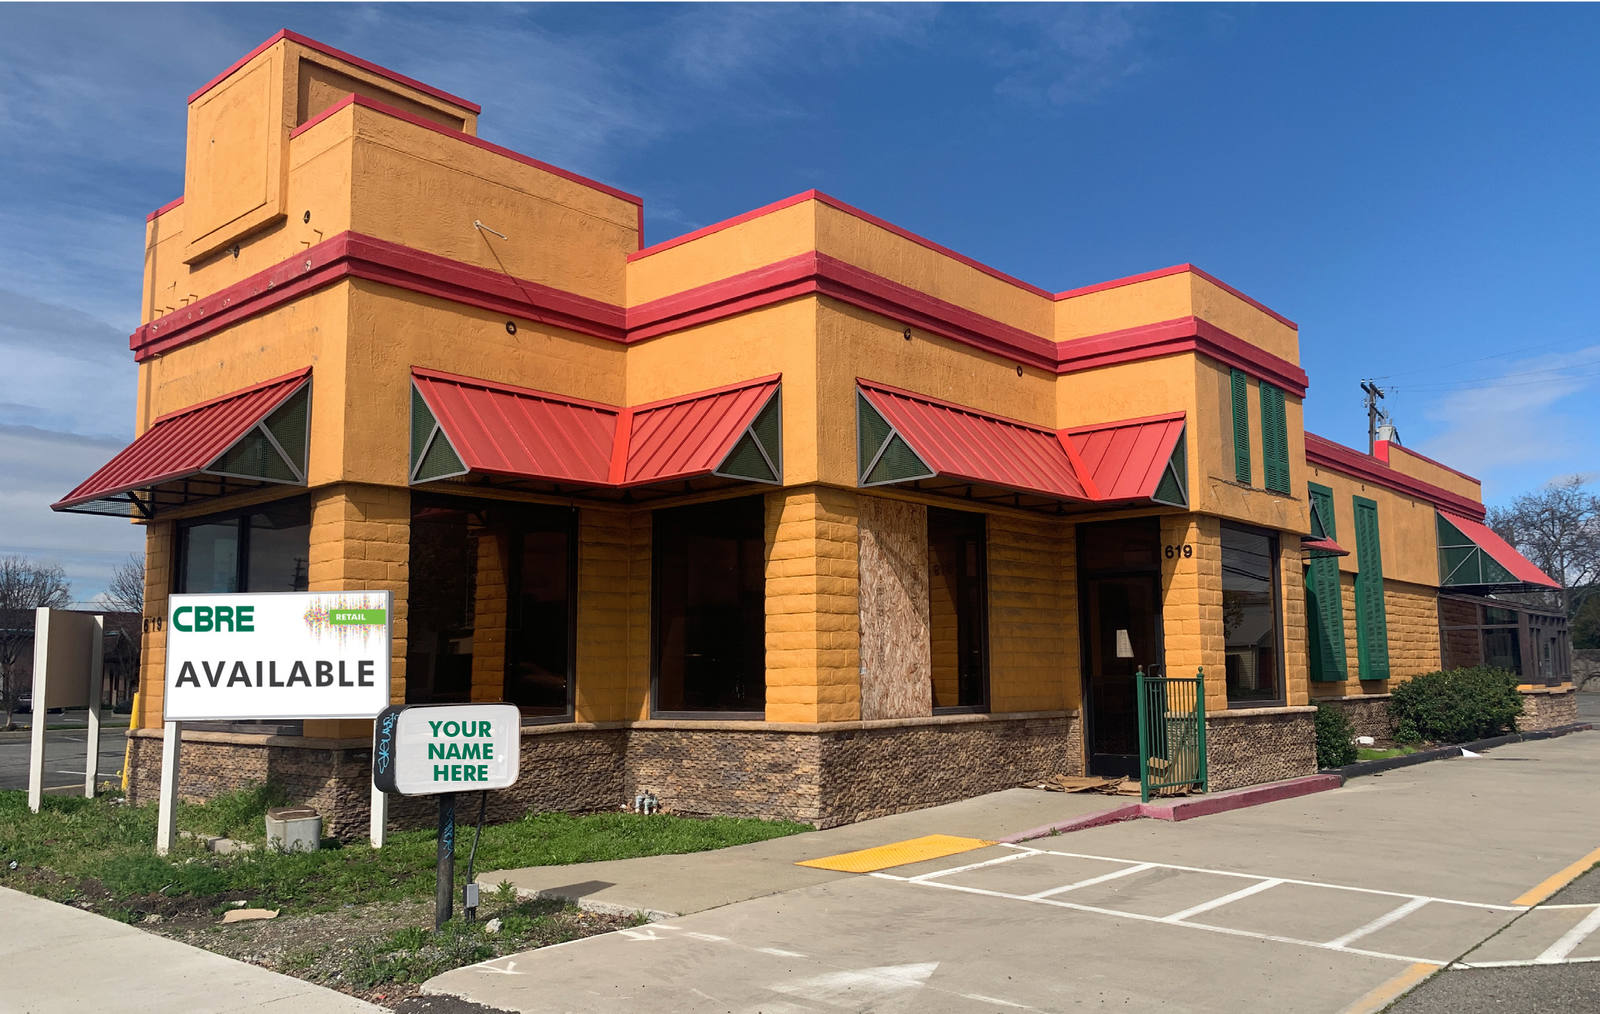 CBRE RetailFreestanding Restaurant with Drive-through619 E. 10th Street  Photo